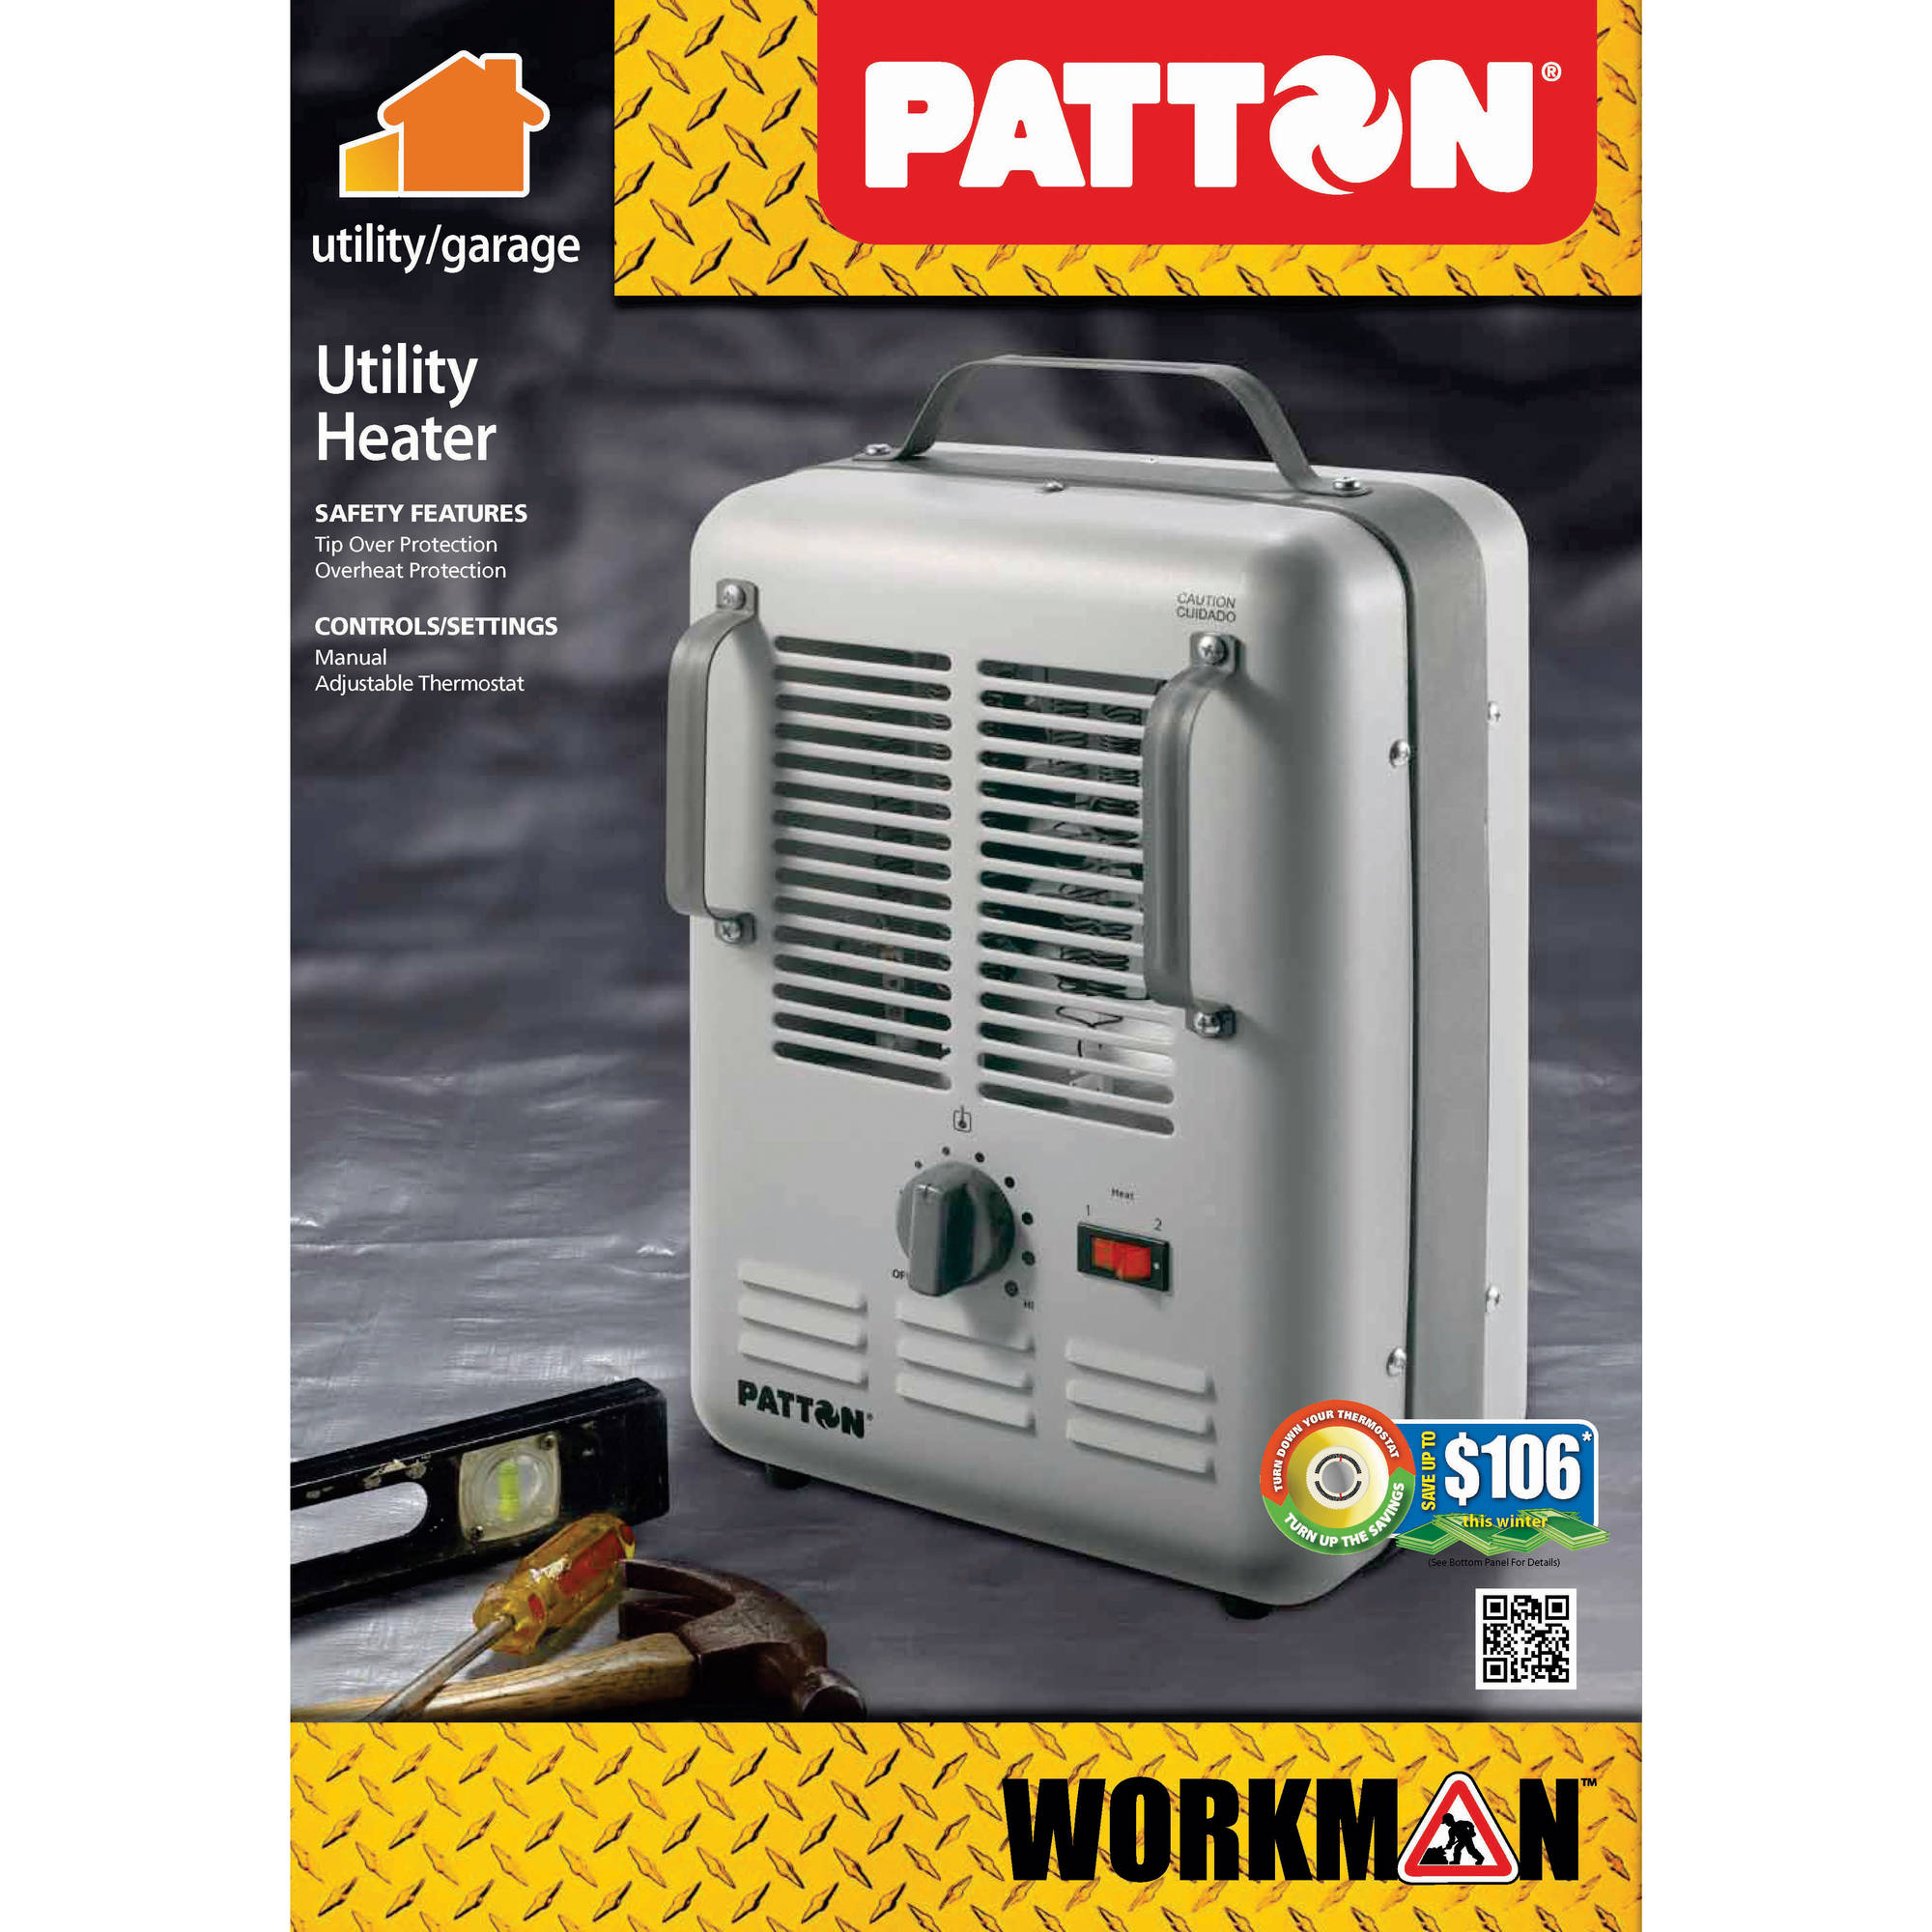 Safe Bathroom Heaters Patton Electric Utility Milkhouse Heater Walmartcom